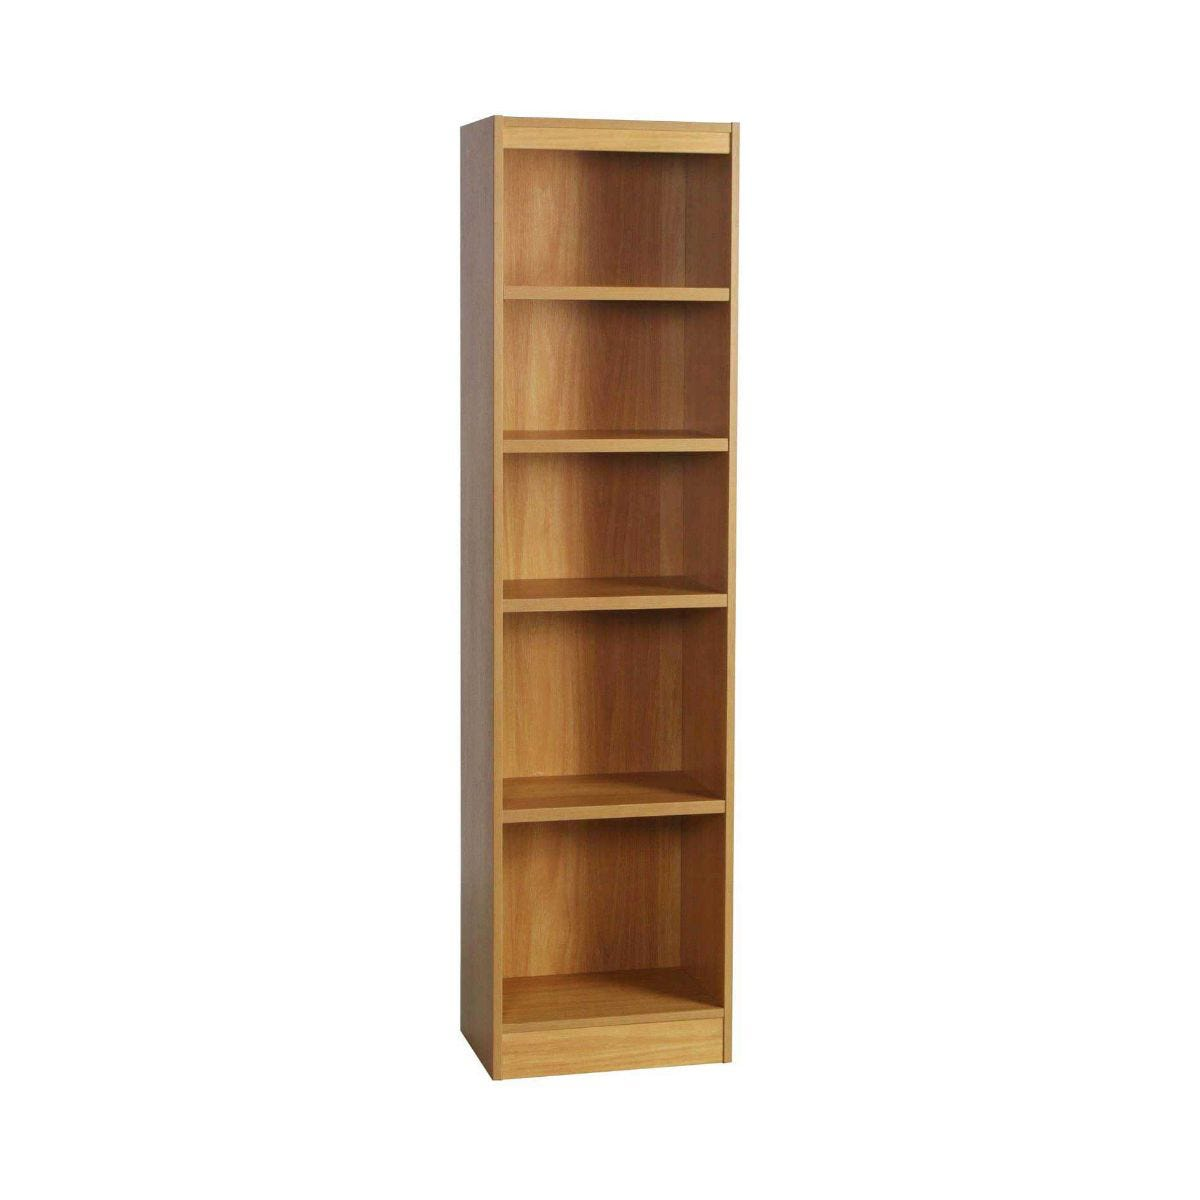 R White High Level Bookcase H-B48 H1828xW476xD370mm, Classic Oak